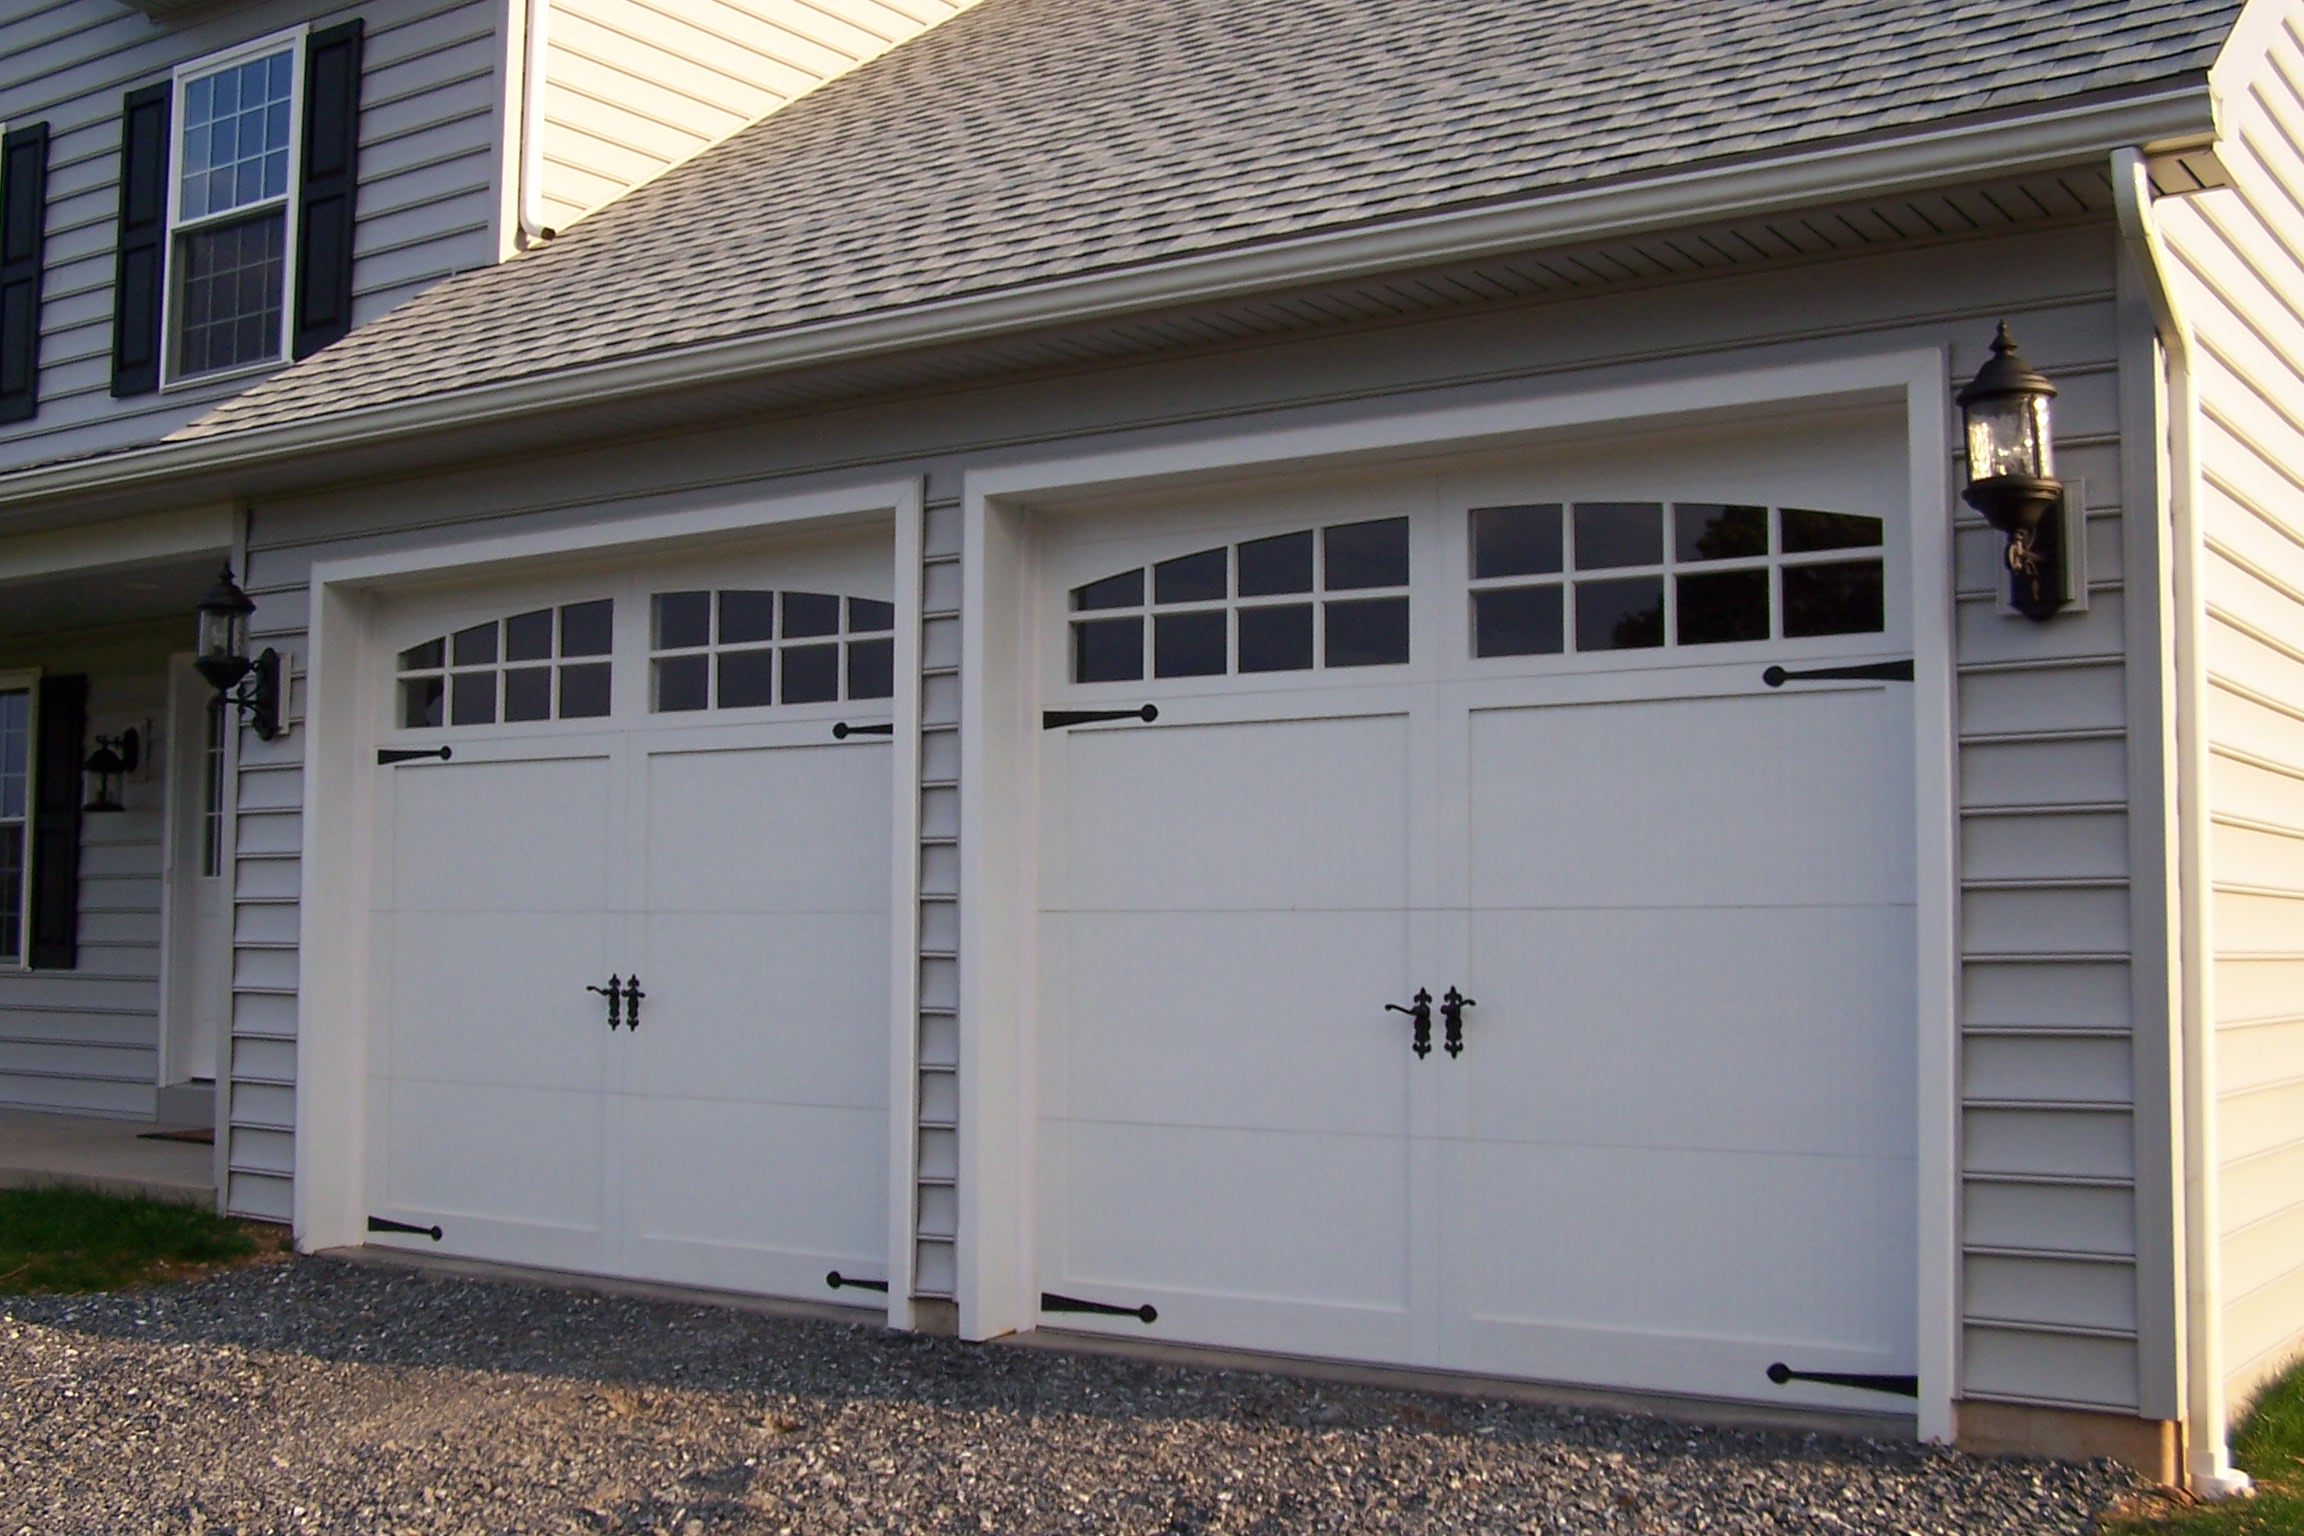 FileSectional-type overhead garage door.JPG & File:Sectional-type overhead garage door.JPG - Wikipedia pezcame.com